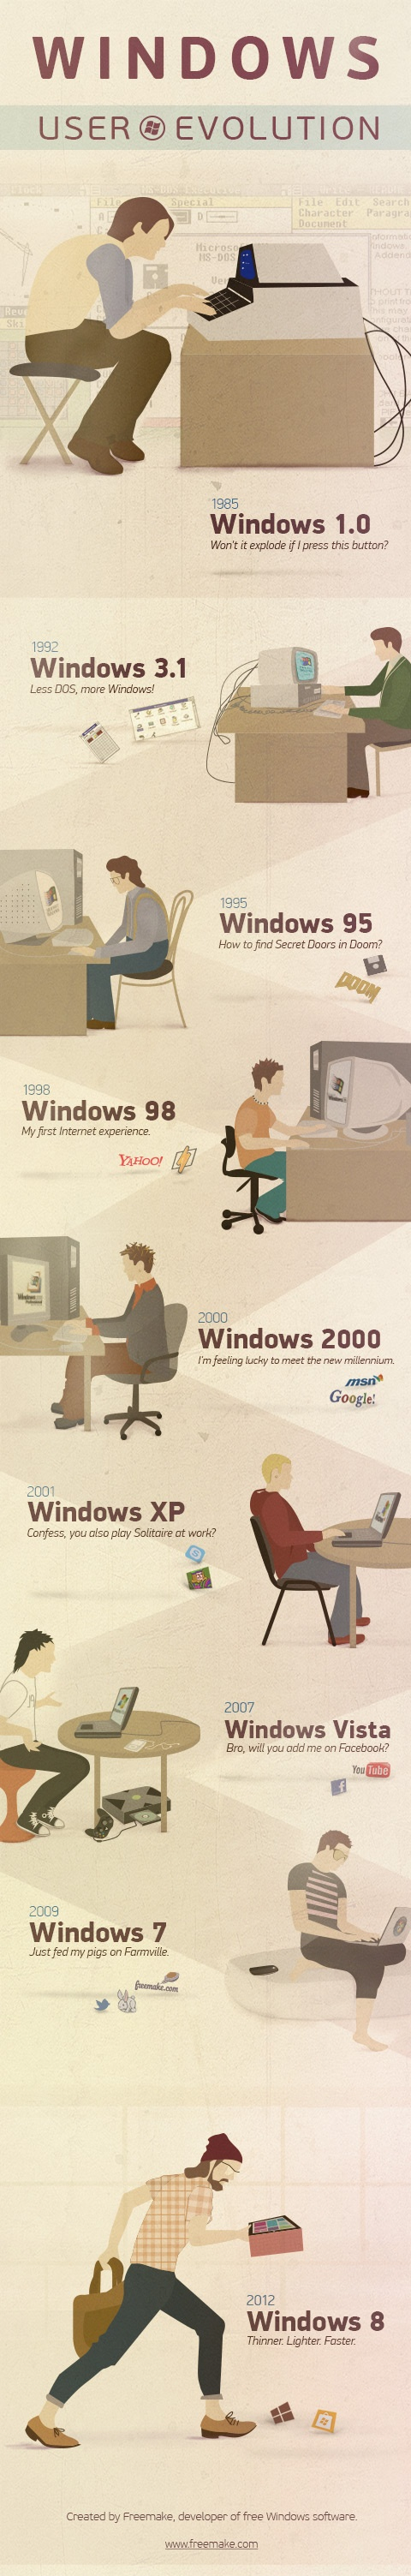 windows user evolution- for the wall in my classroom